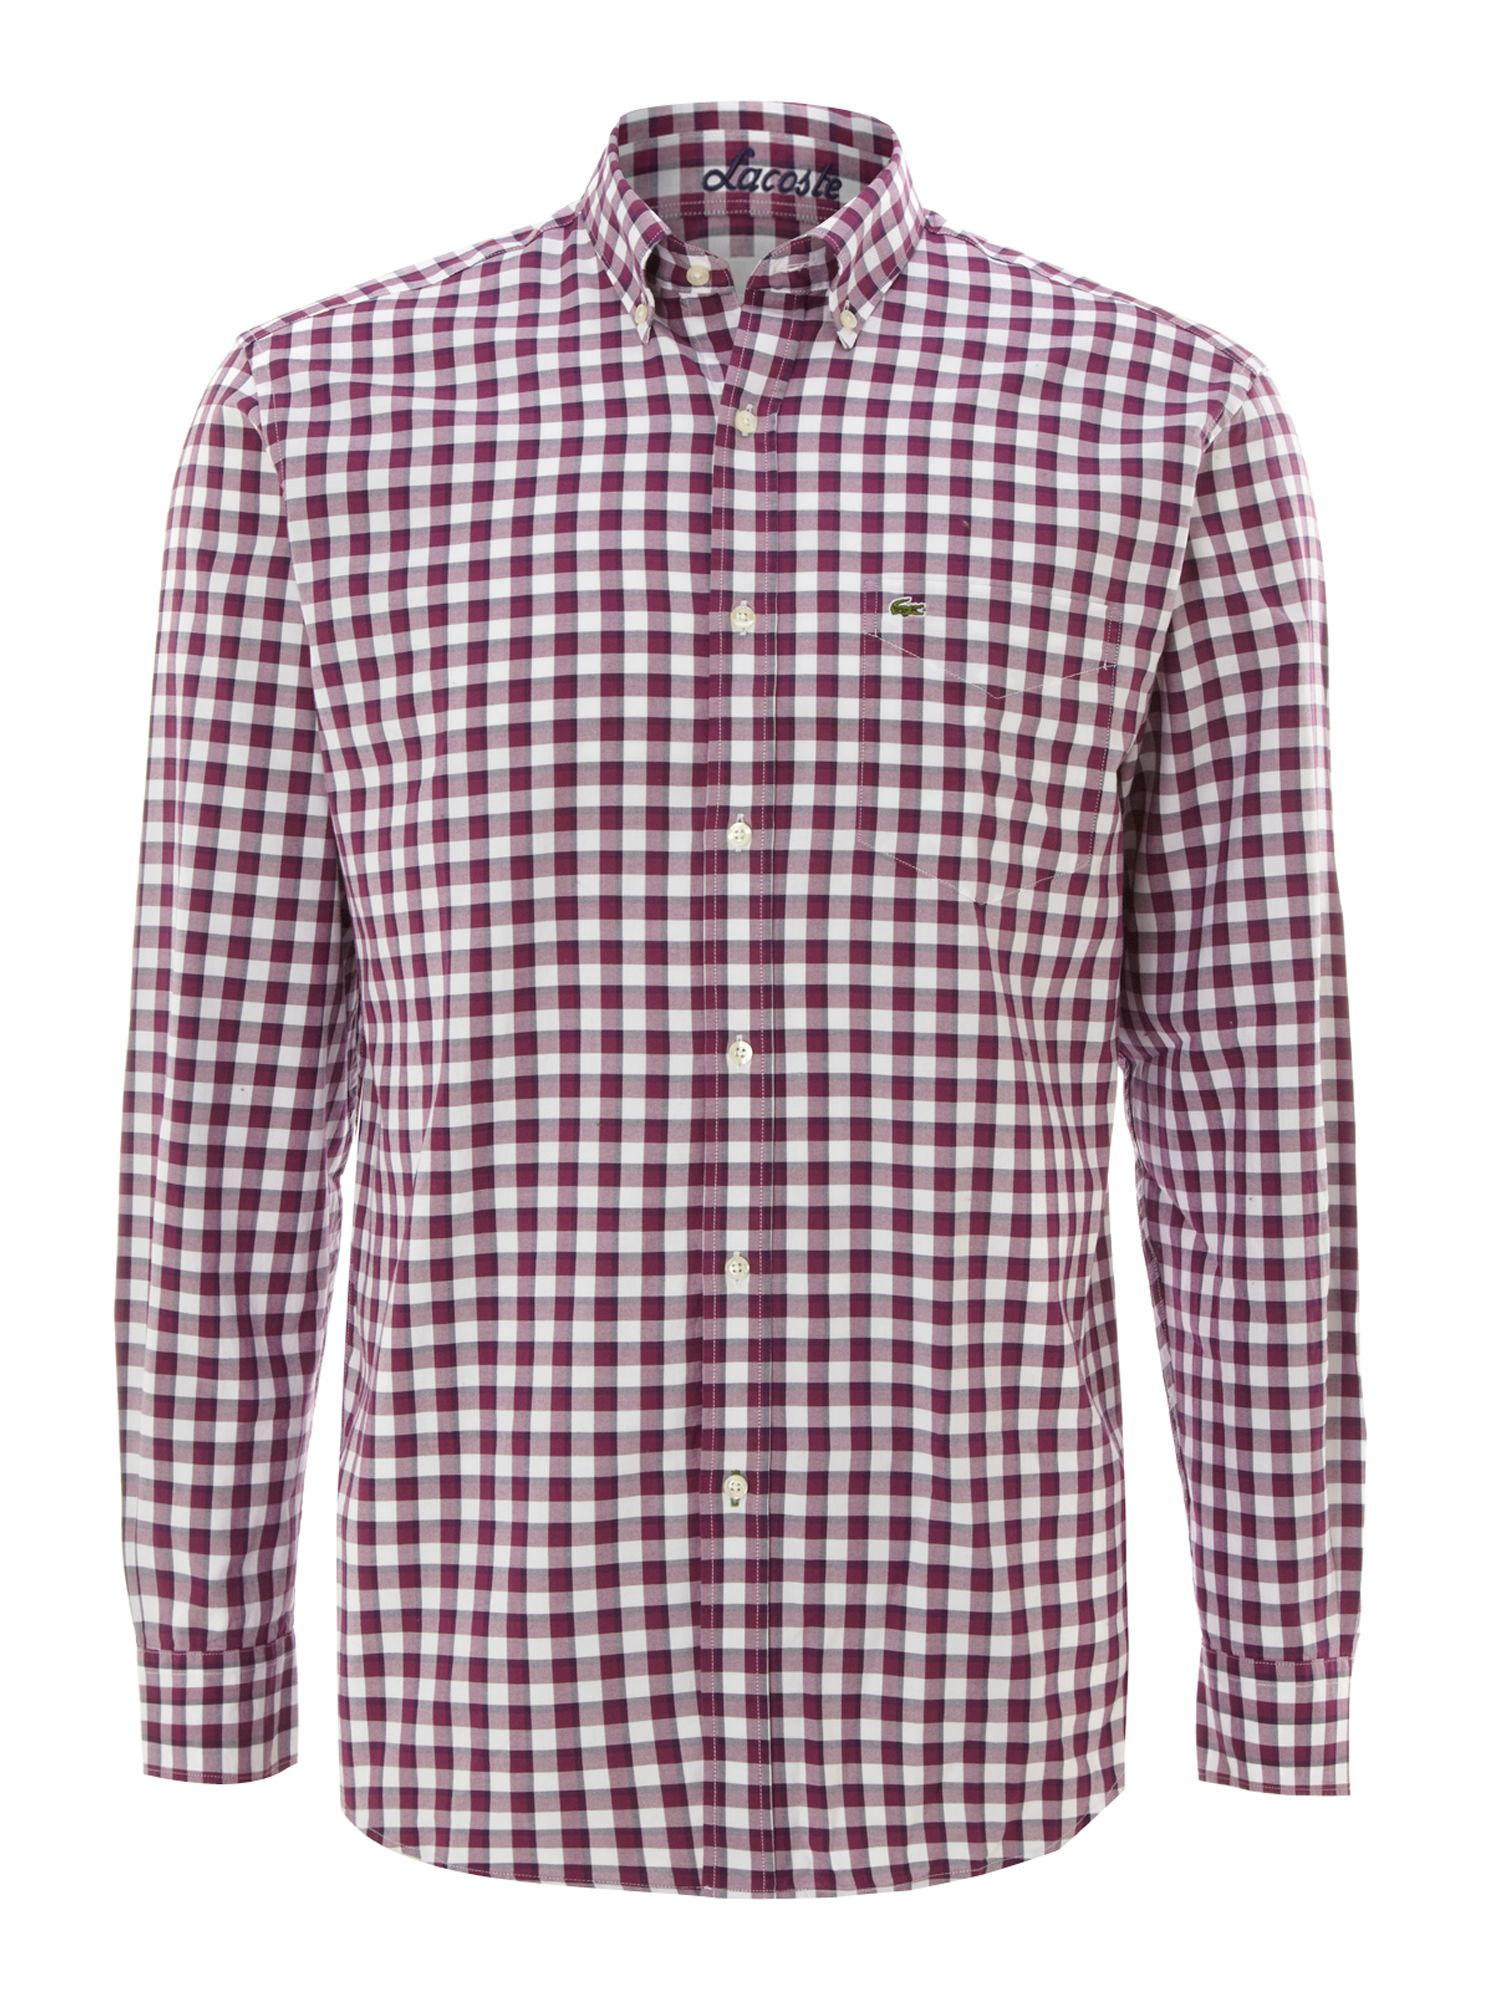 Lacoste Long Sleeved Gingham Shirt In Purple For Men Pink